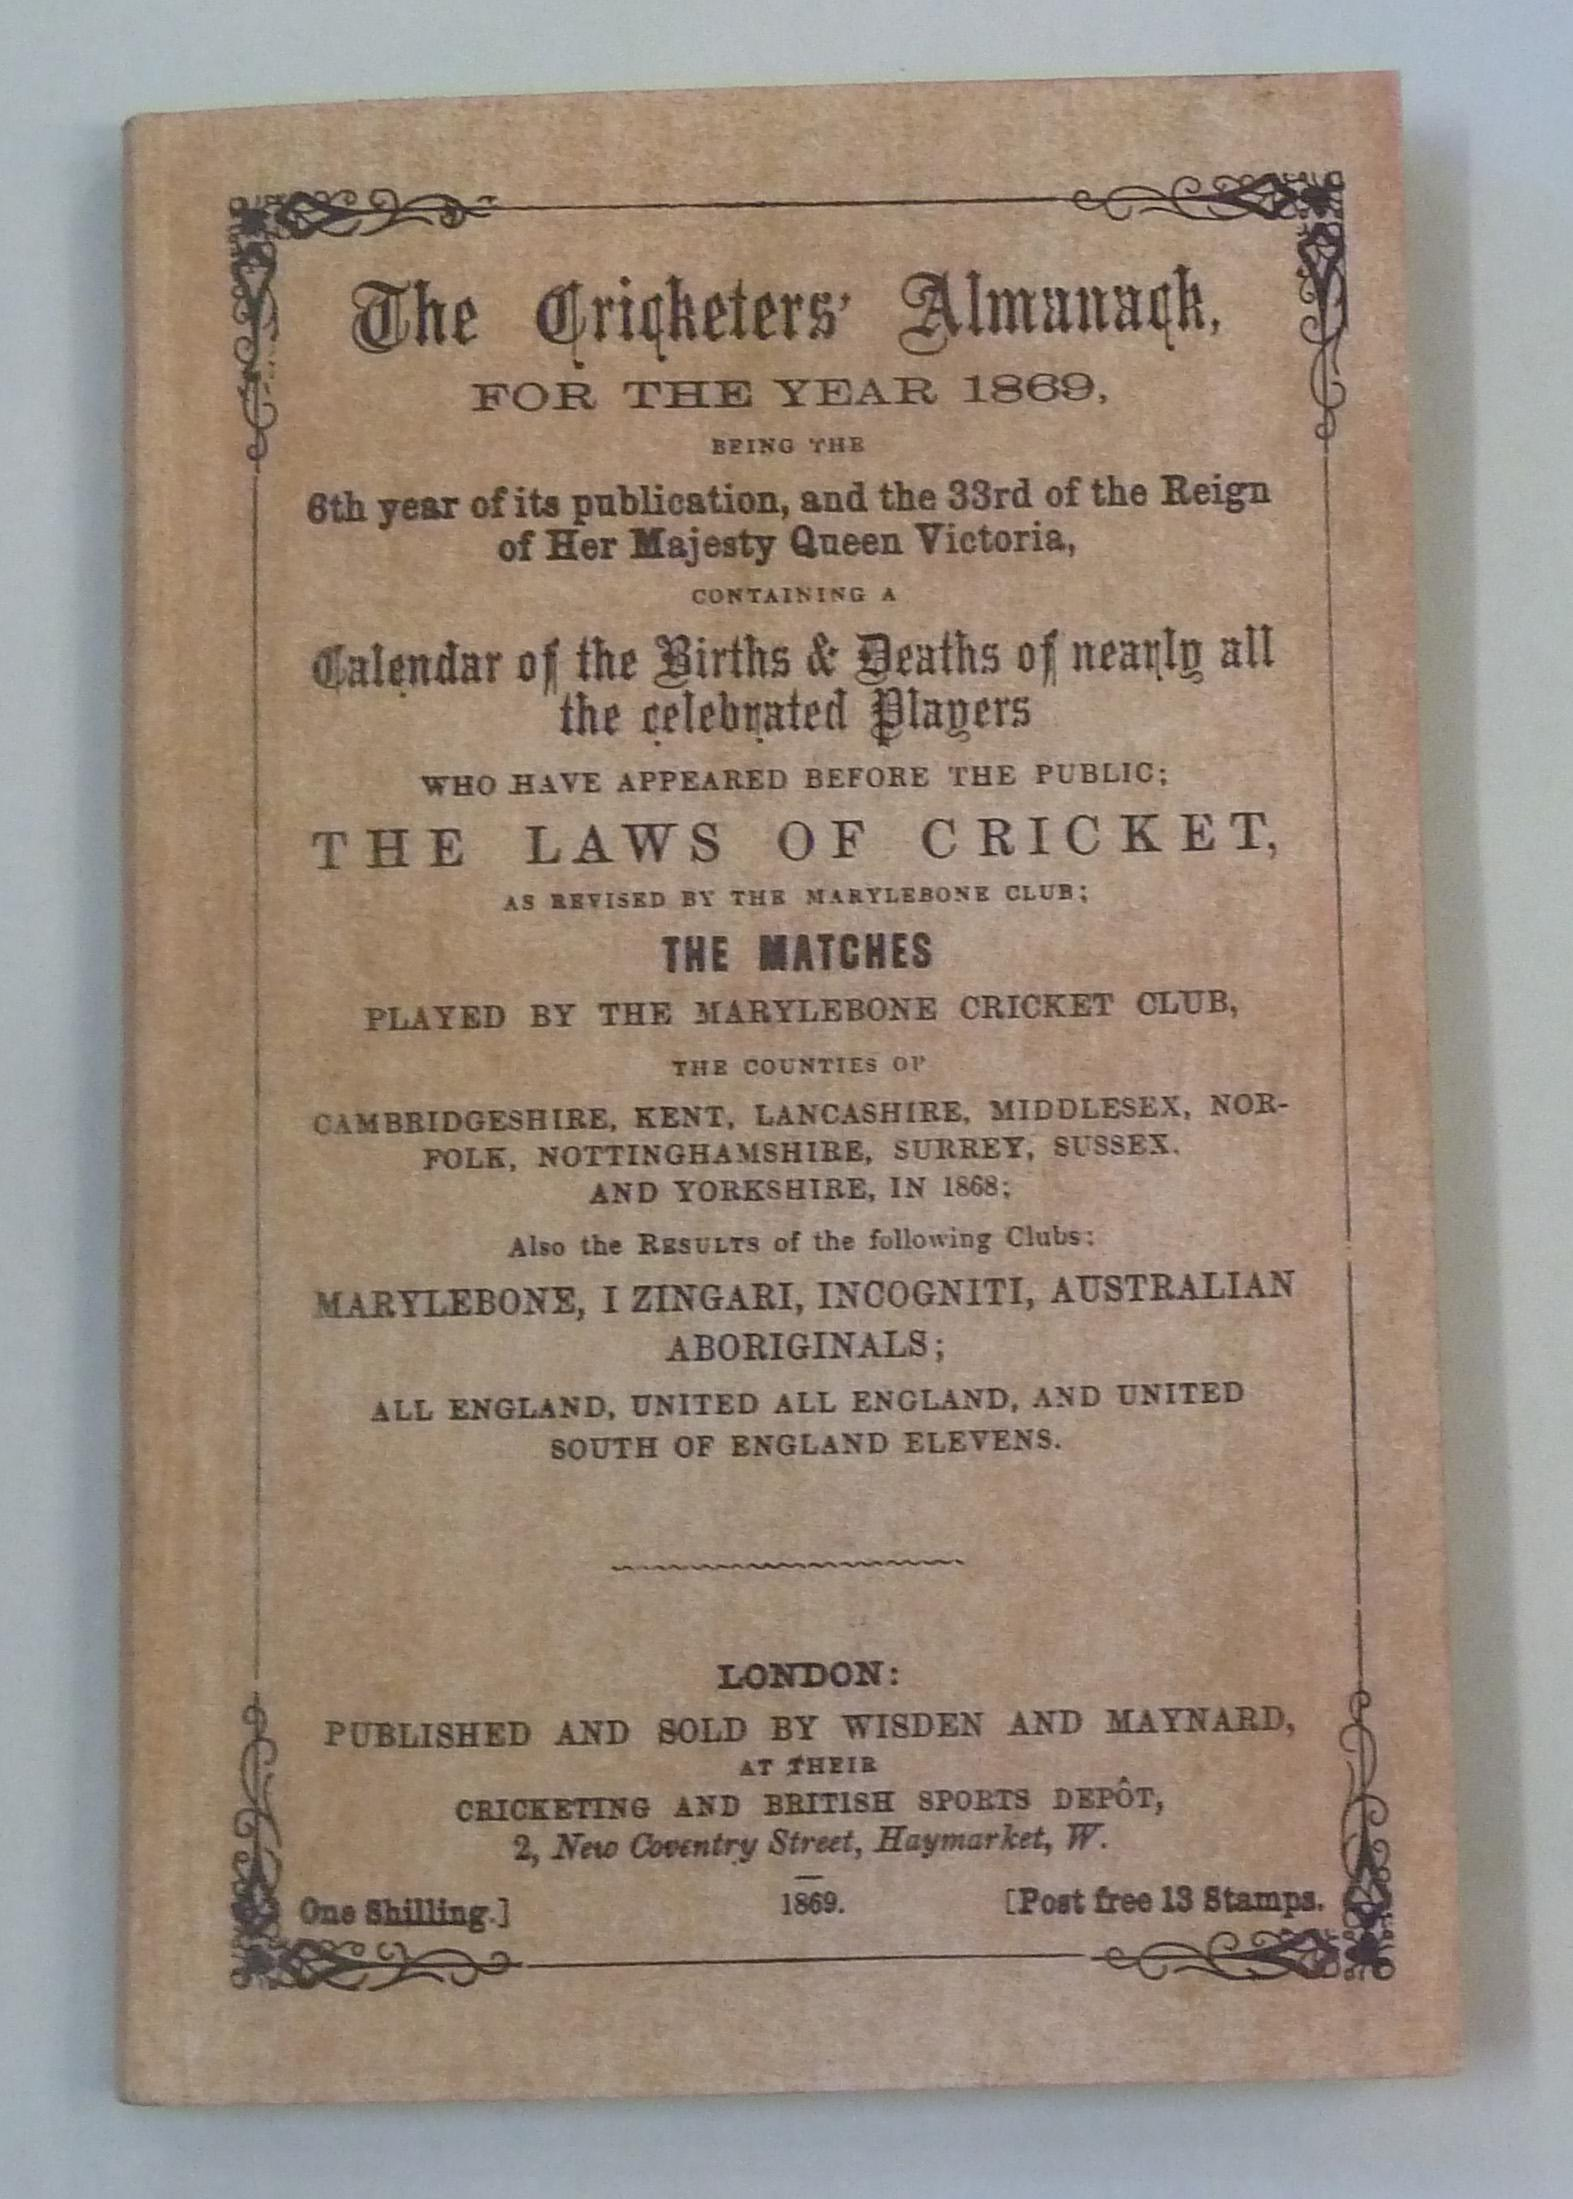 **Wisden The Cricketers' Almanack for the Year 1869